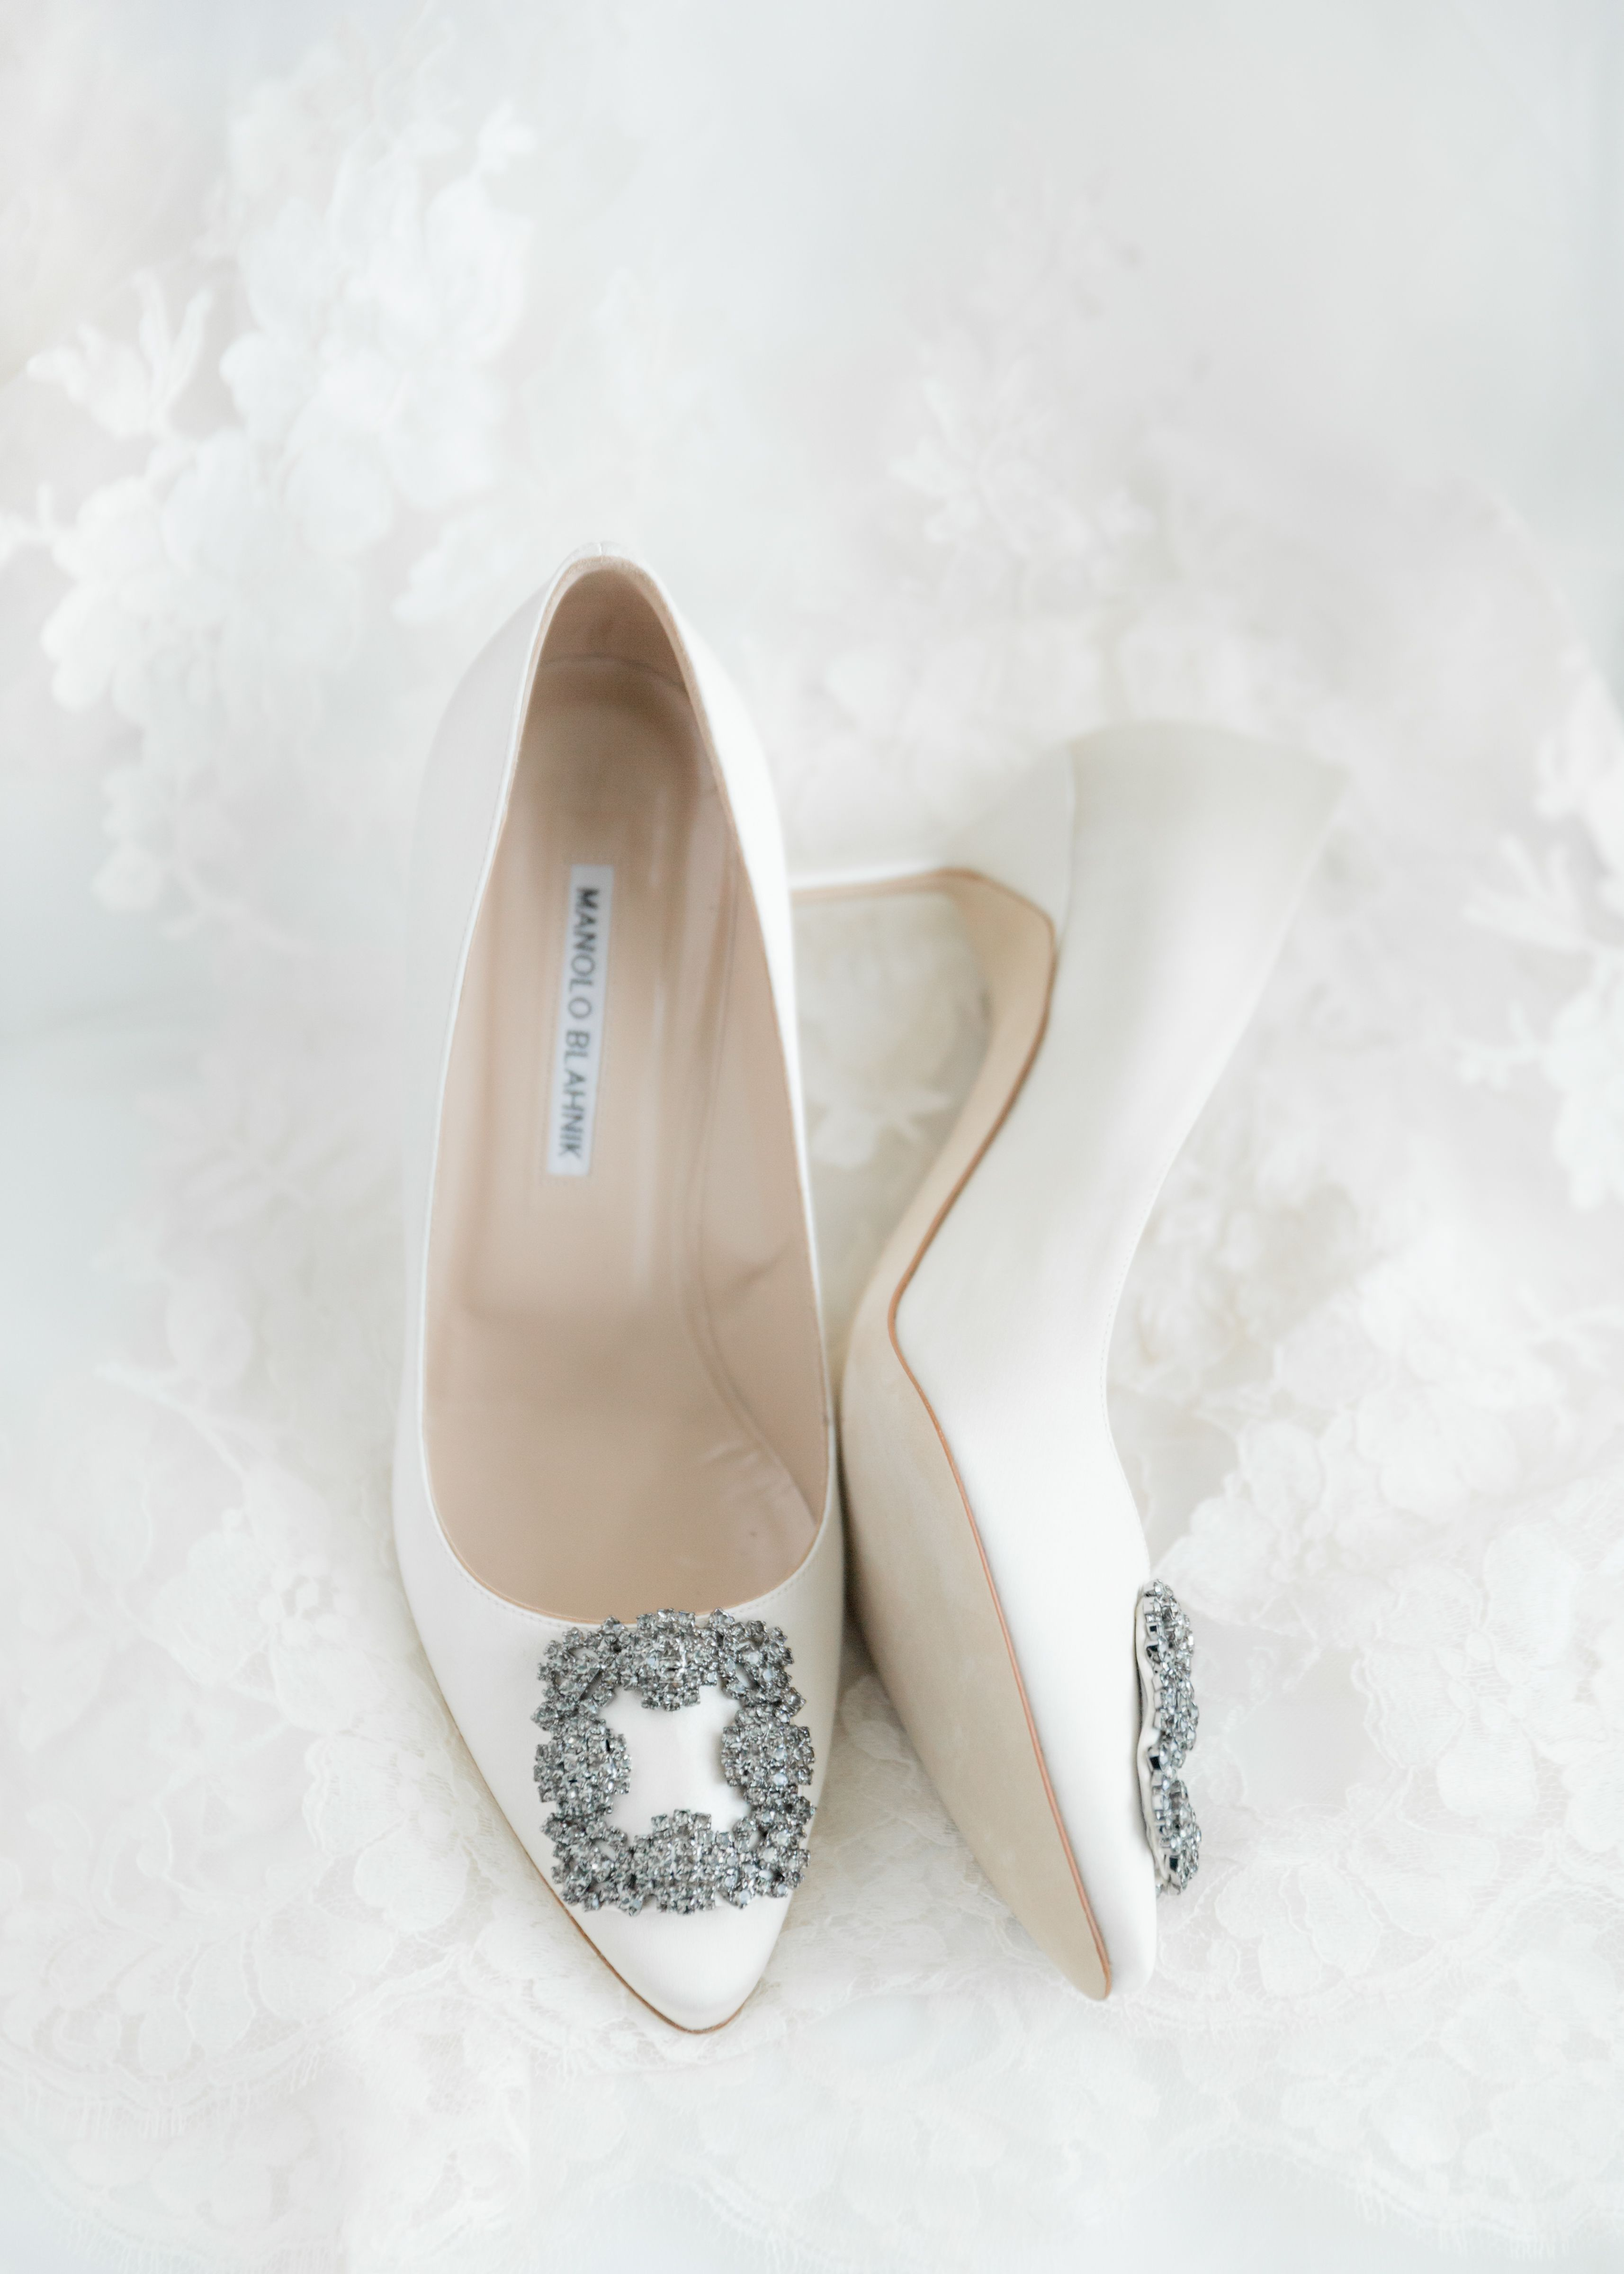 Classic white satin and rhinestone wedding shoes pumps by